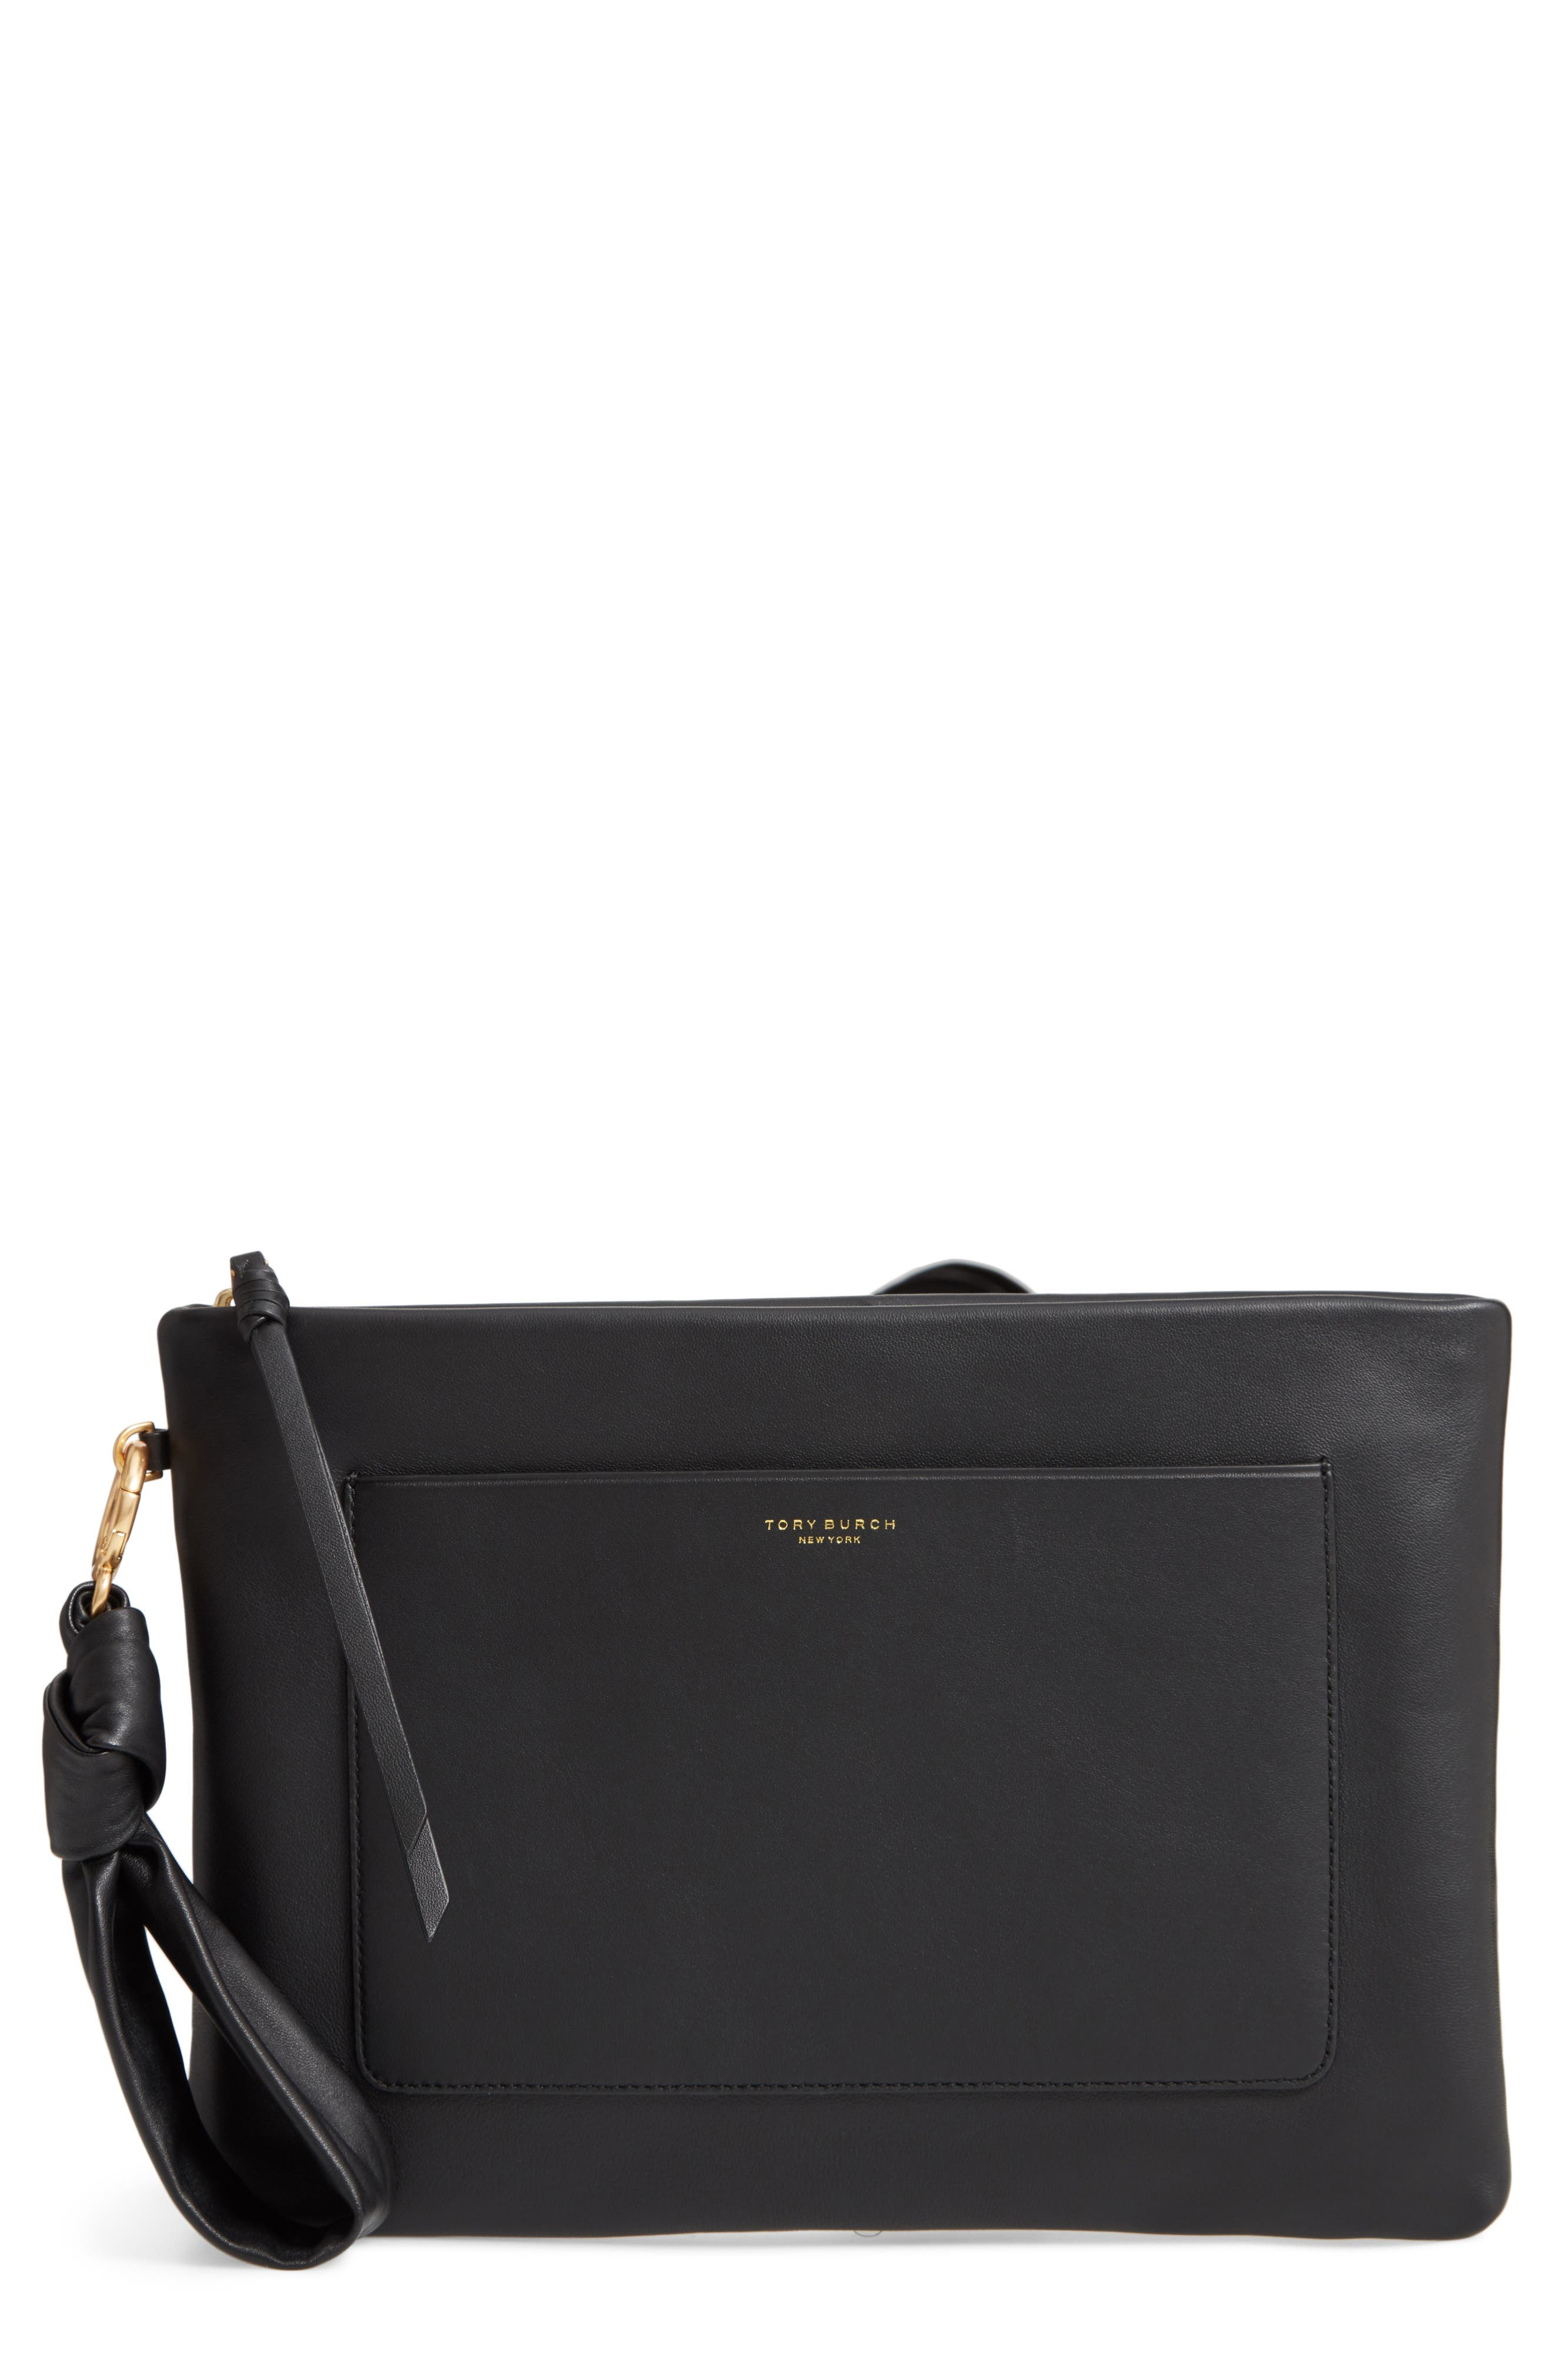 TORY BURCH Beau Leather Pouch, Main, color, BLACK